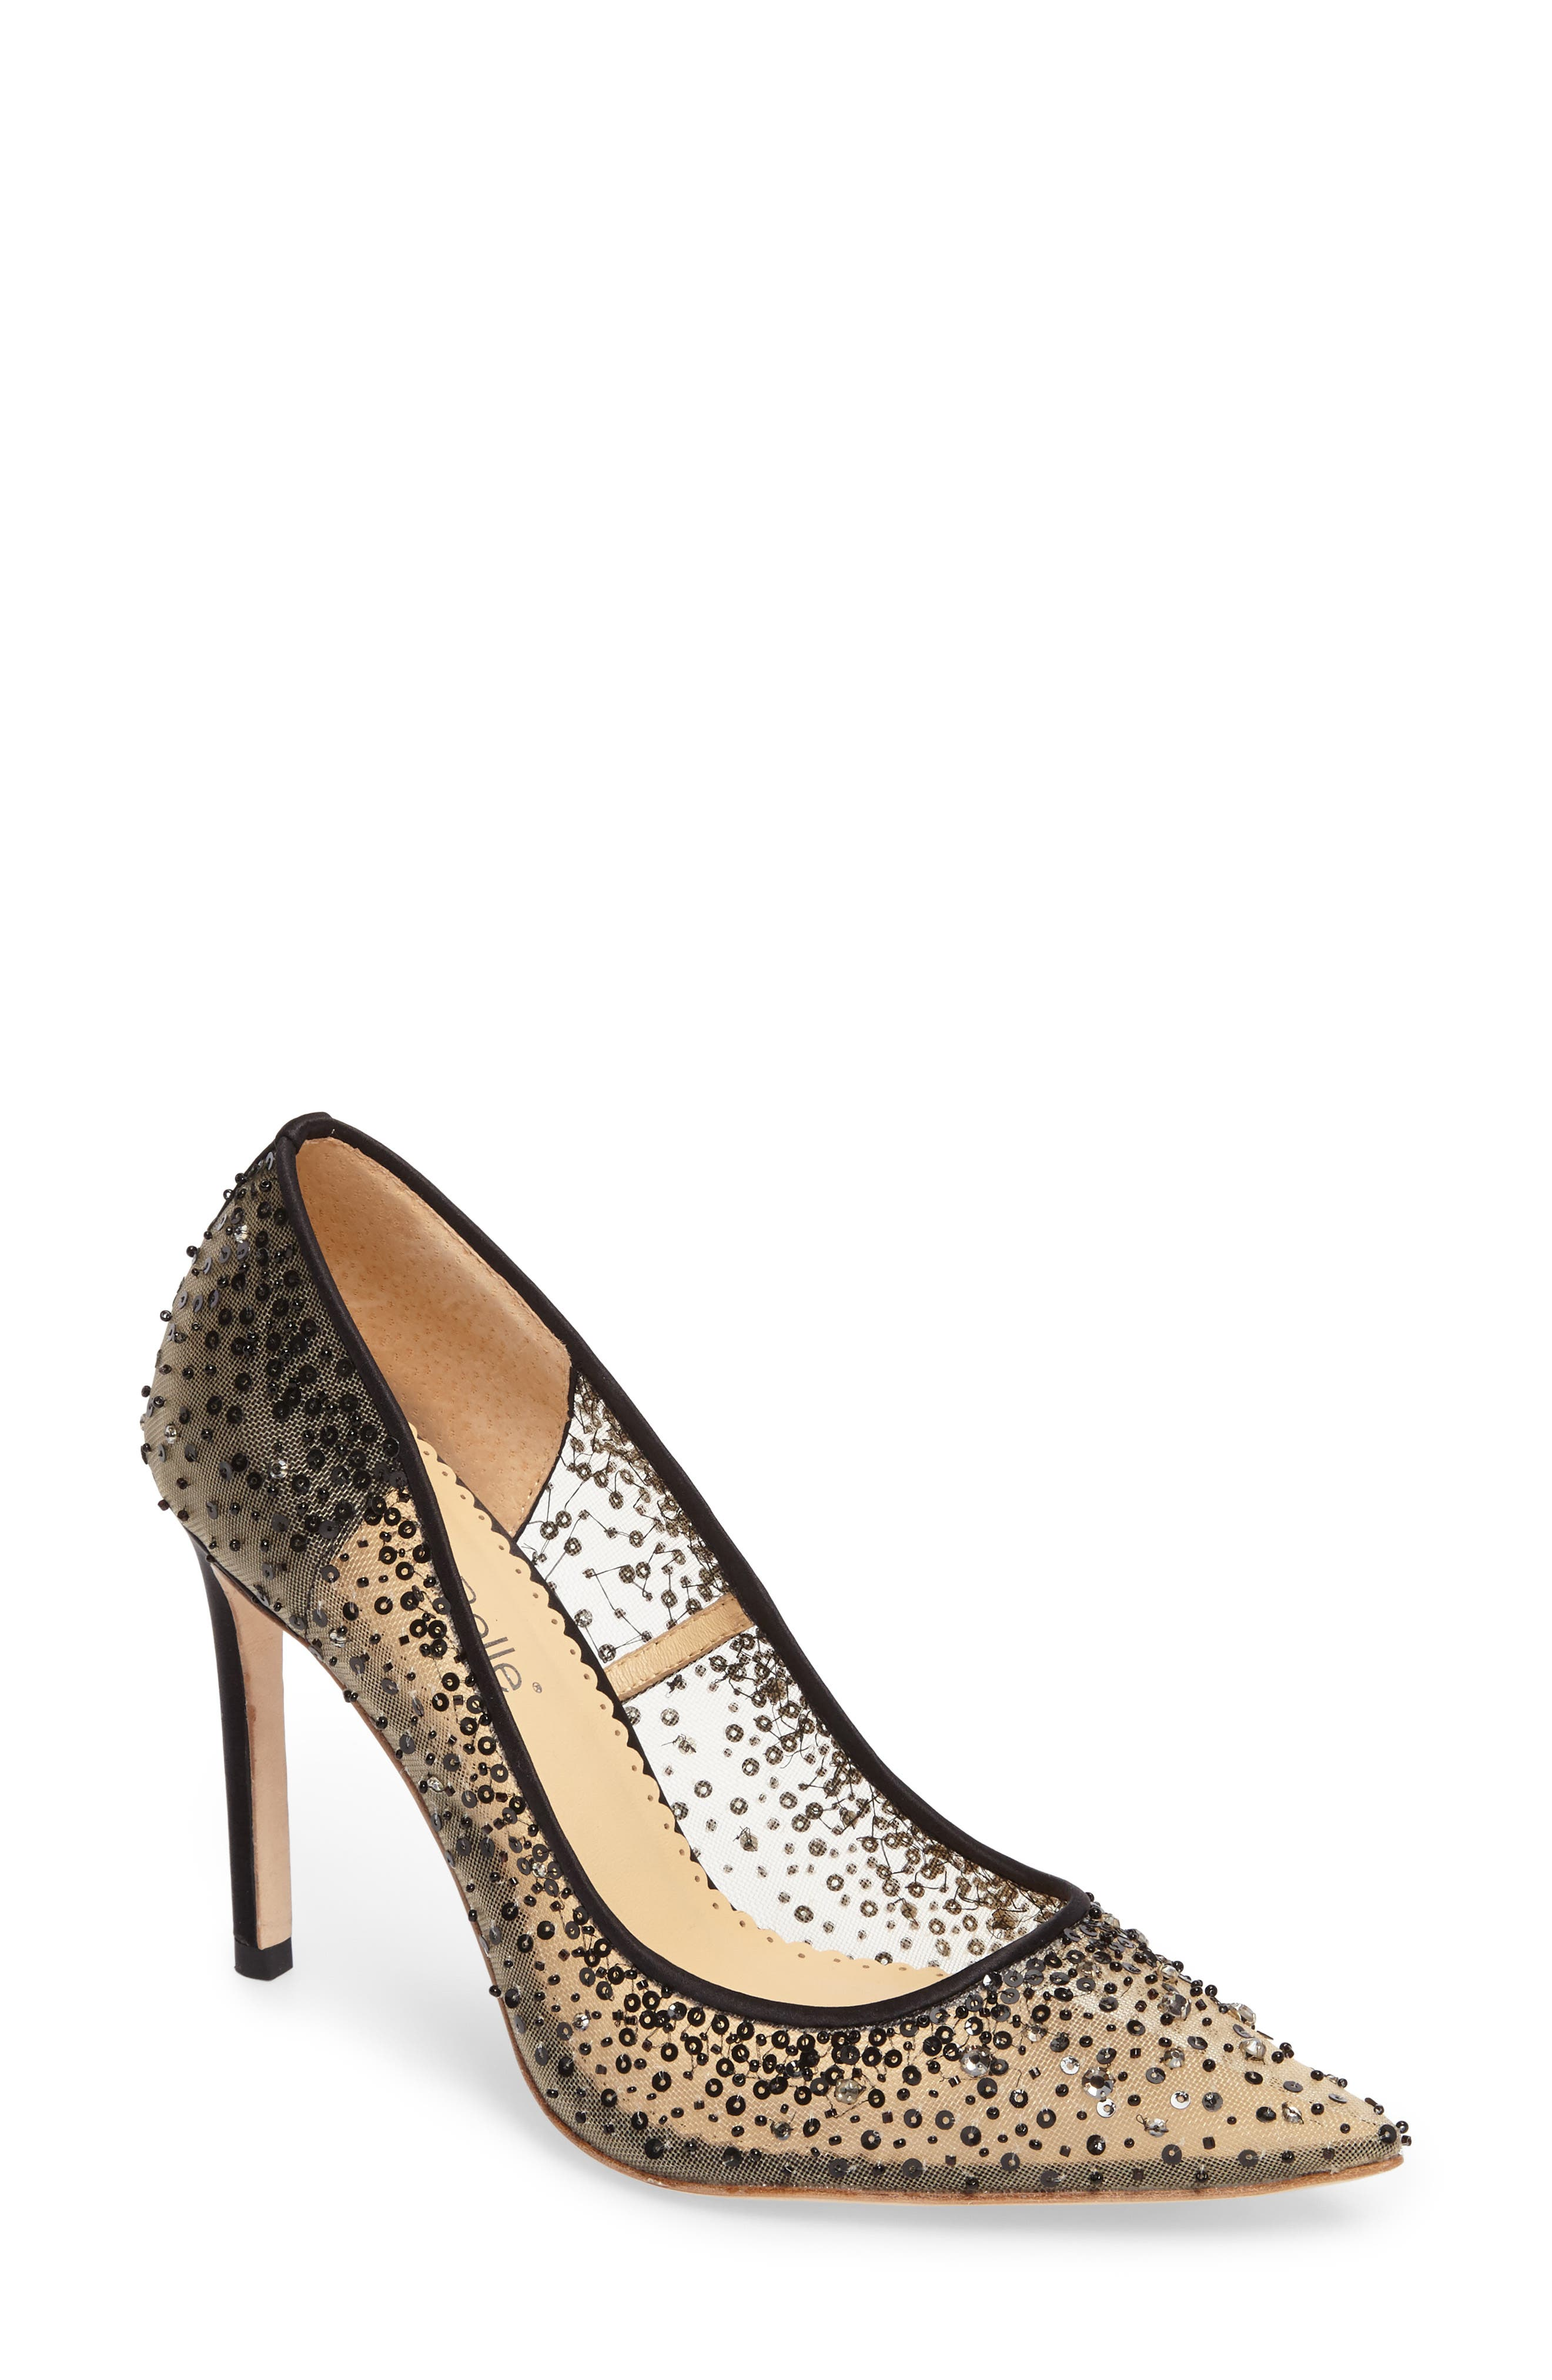 Alternate Image 1 Selected - Bella Belle Elsa Beaded Illusion Pump (Women)